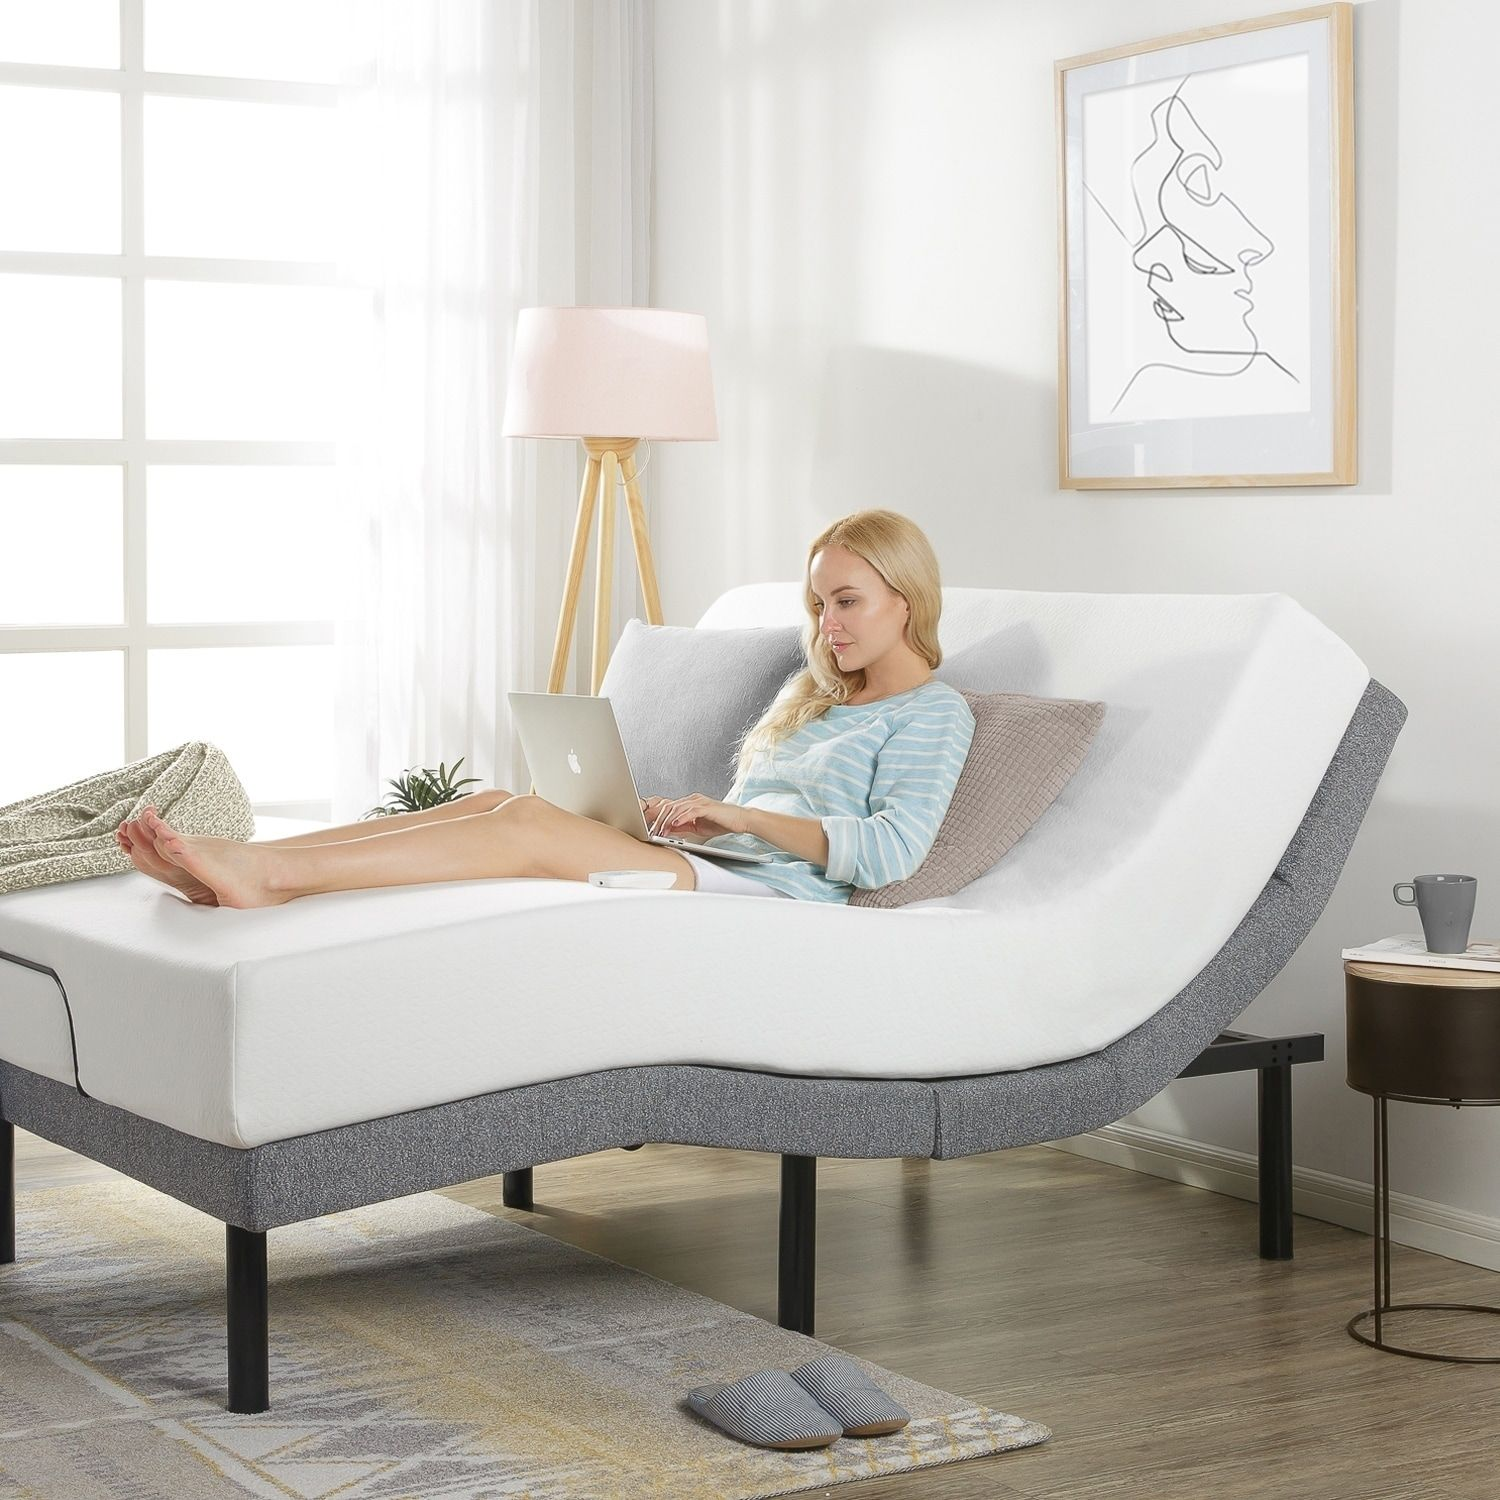 Adjustable Bed Base with Added Head Tilt/Wireless Remote